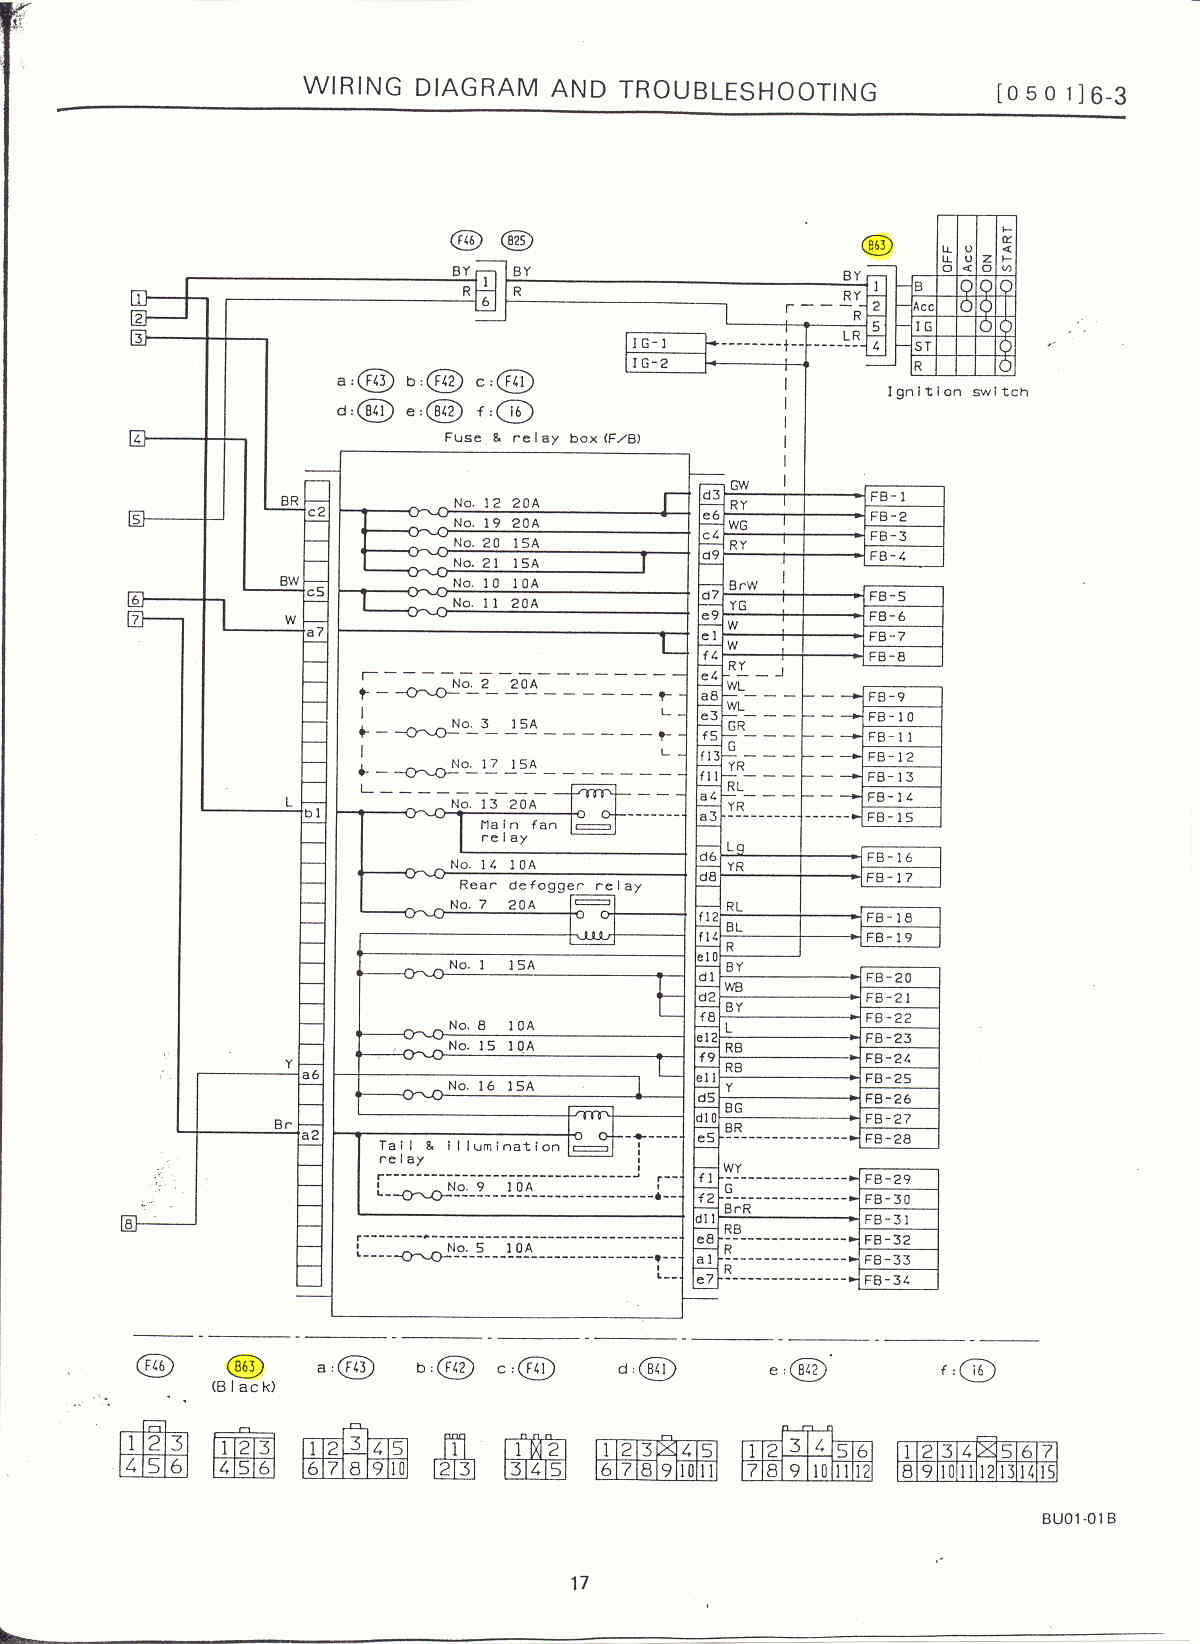 Subaru Baja Fuse Box Diagram Circuit Wiring Diagrams